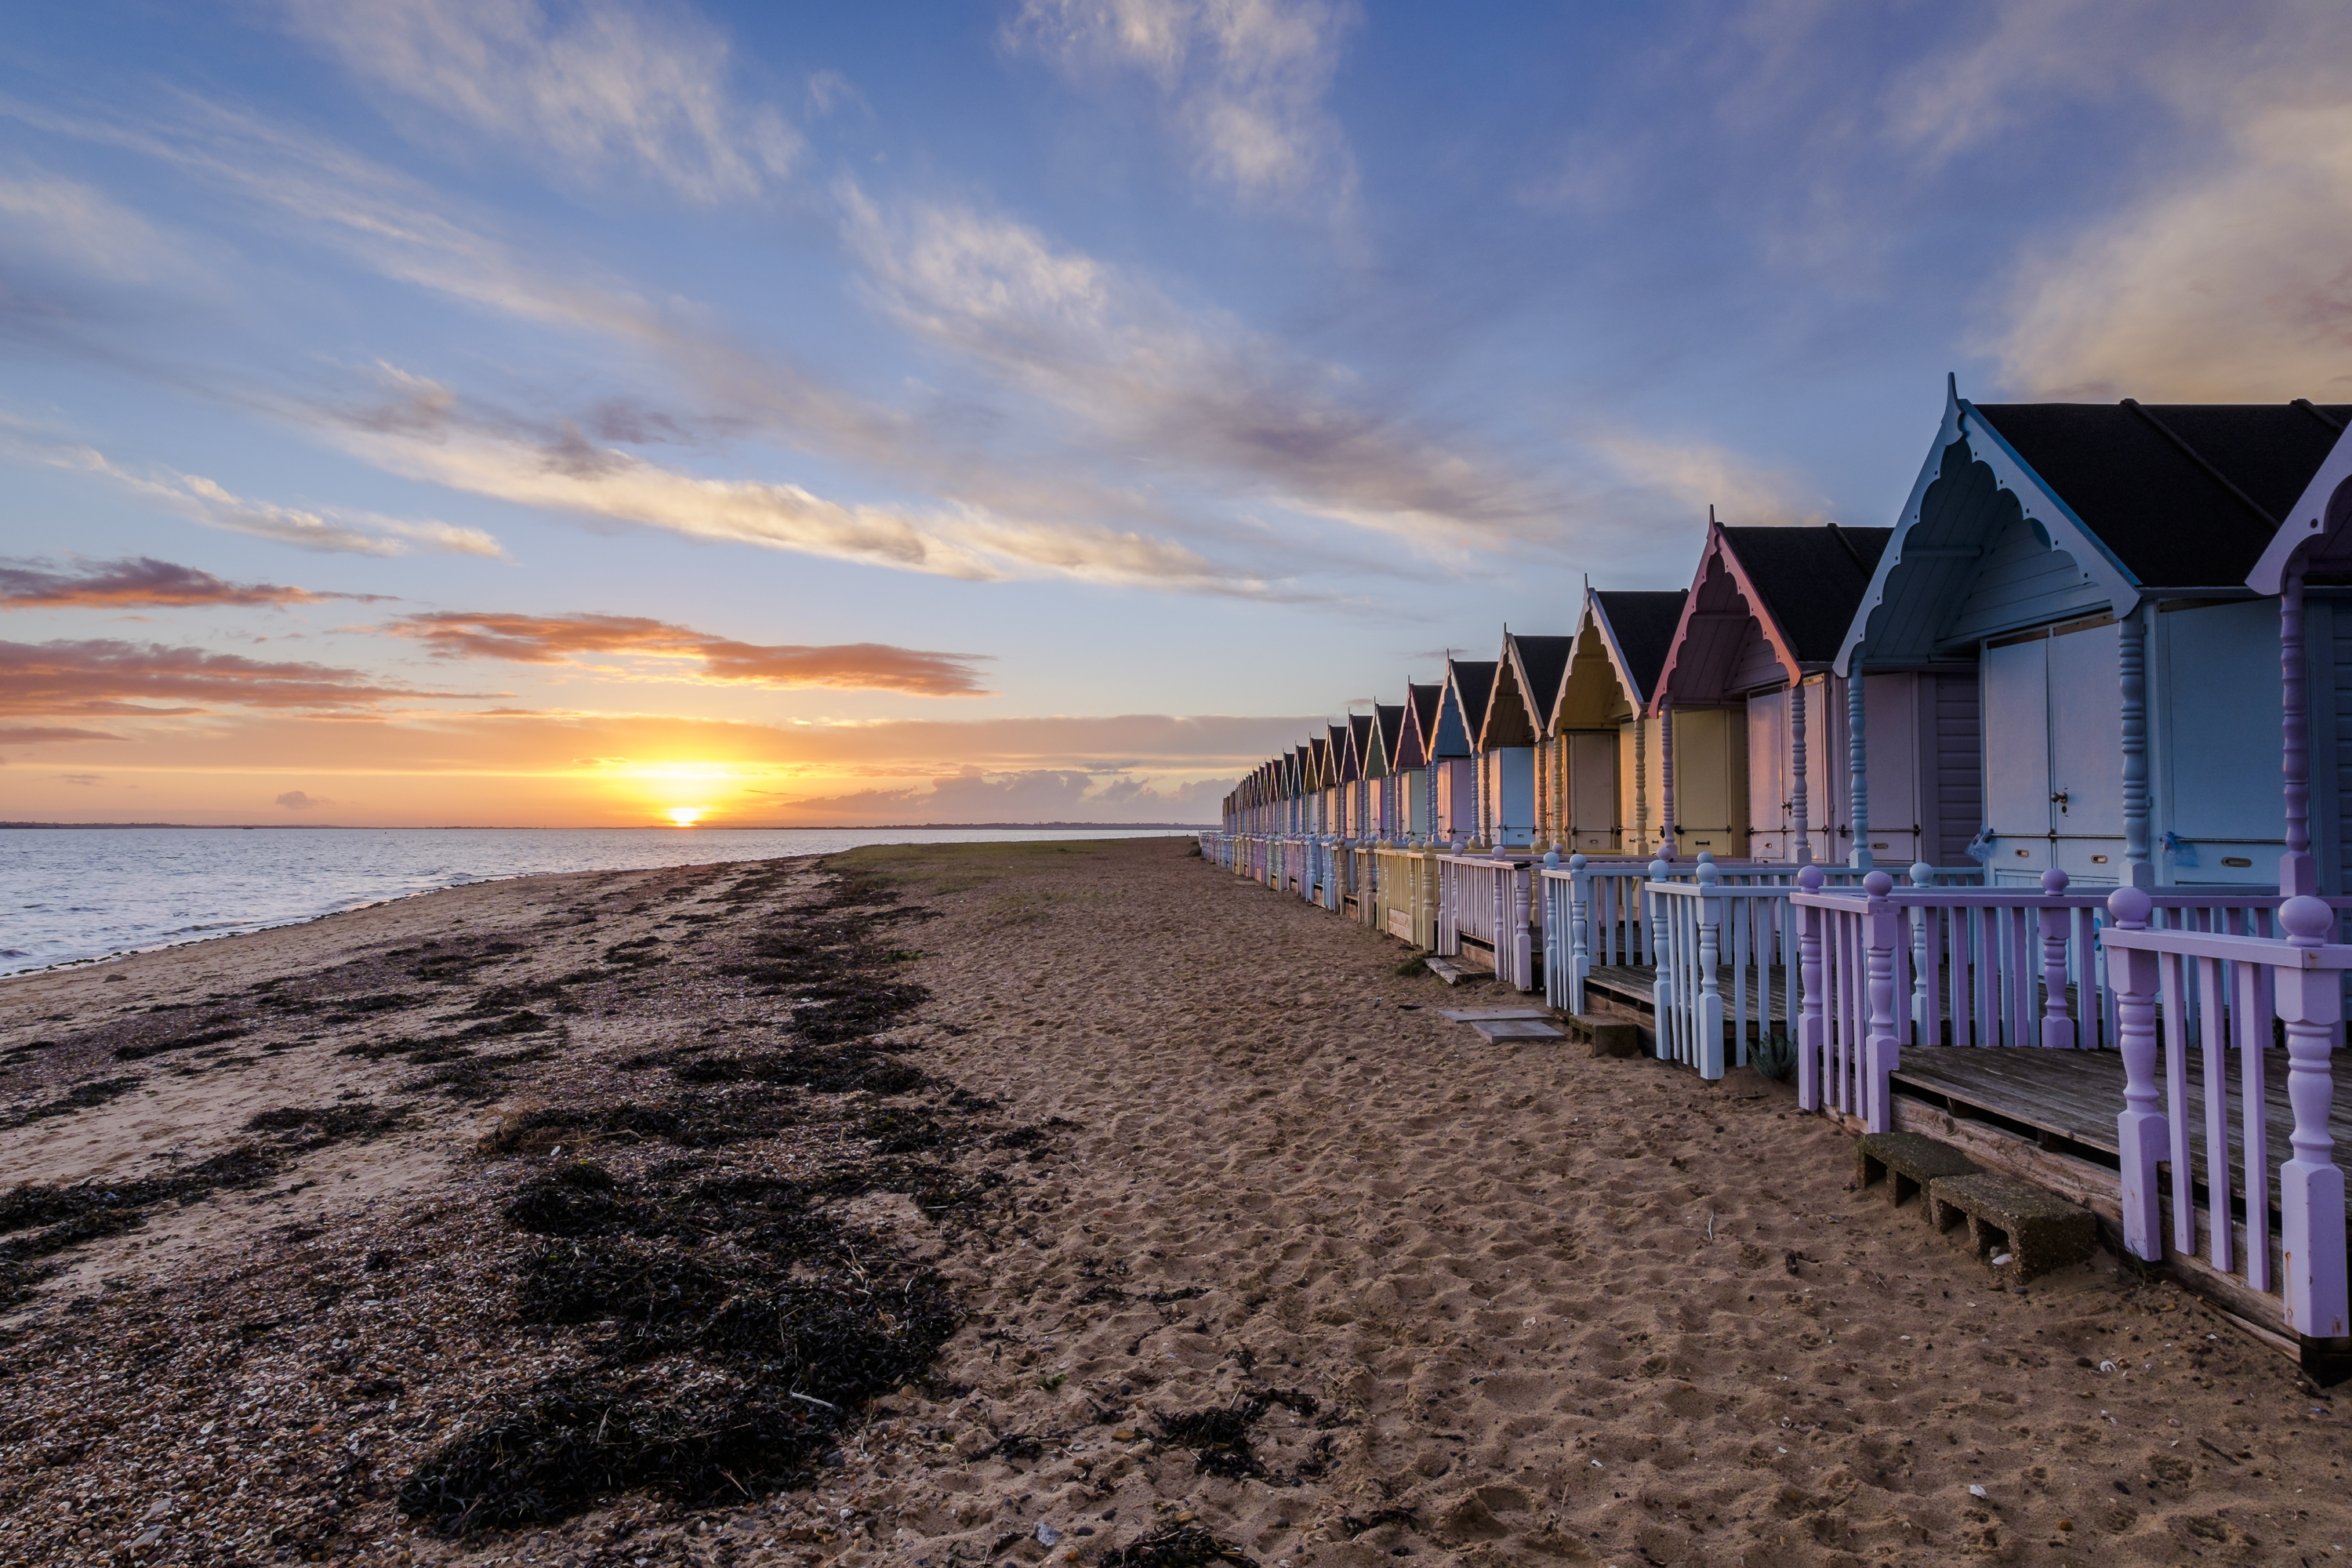 10 brilliant beaches near London